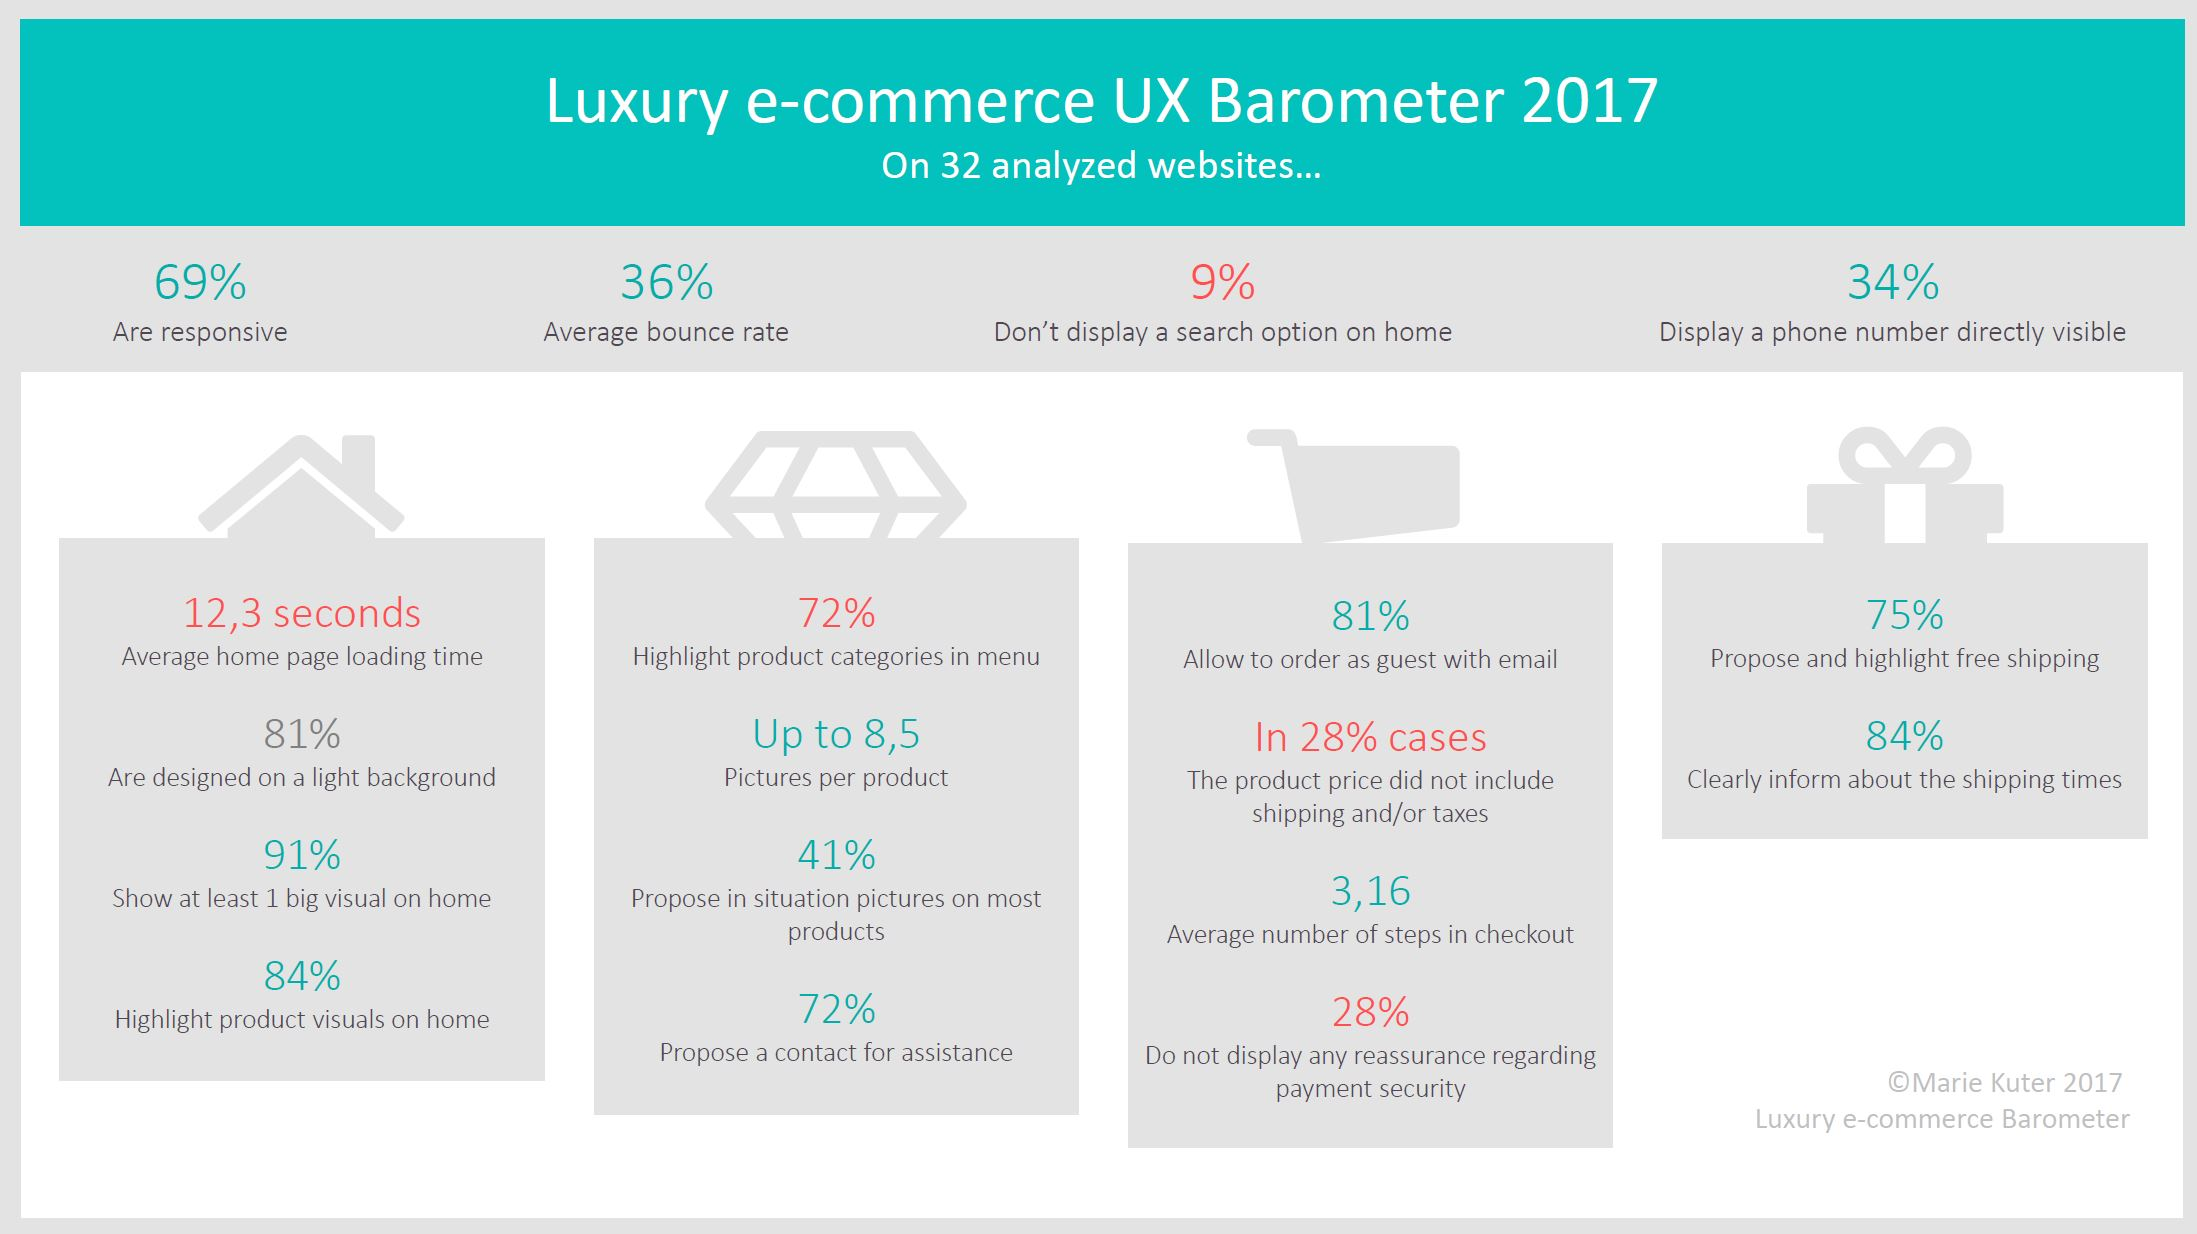 Luxury e-commerce UX Barometer 2017: Key findings, a few figures